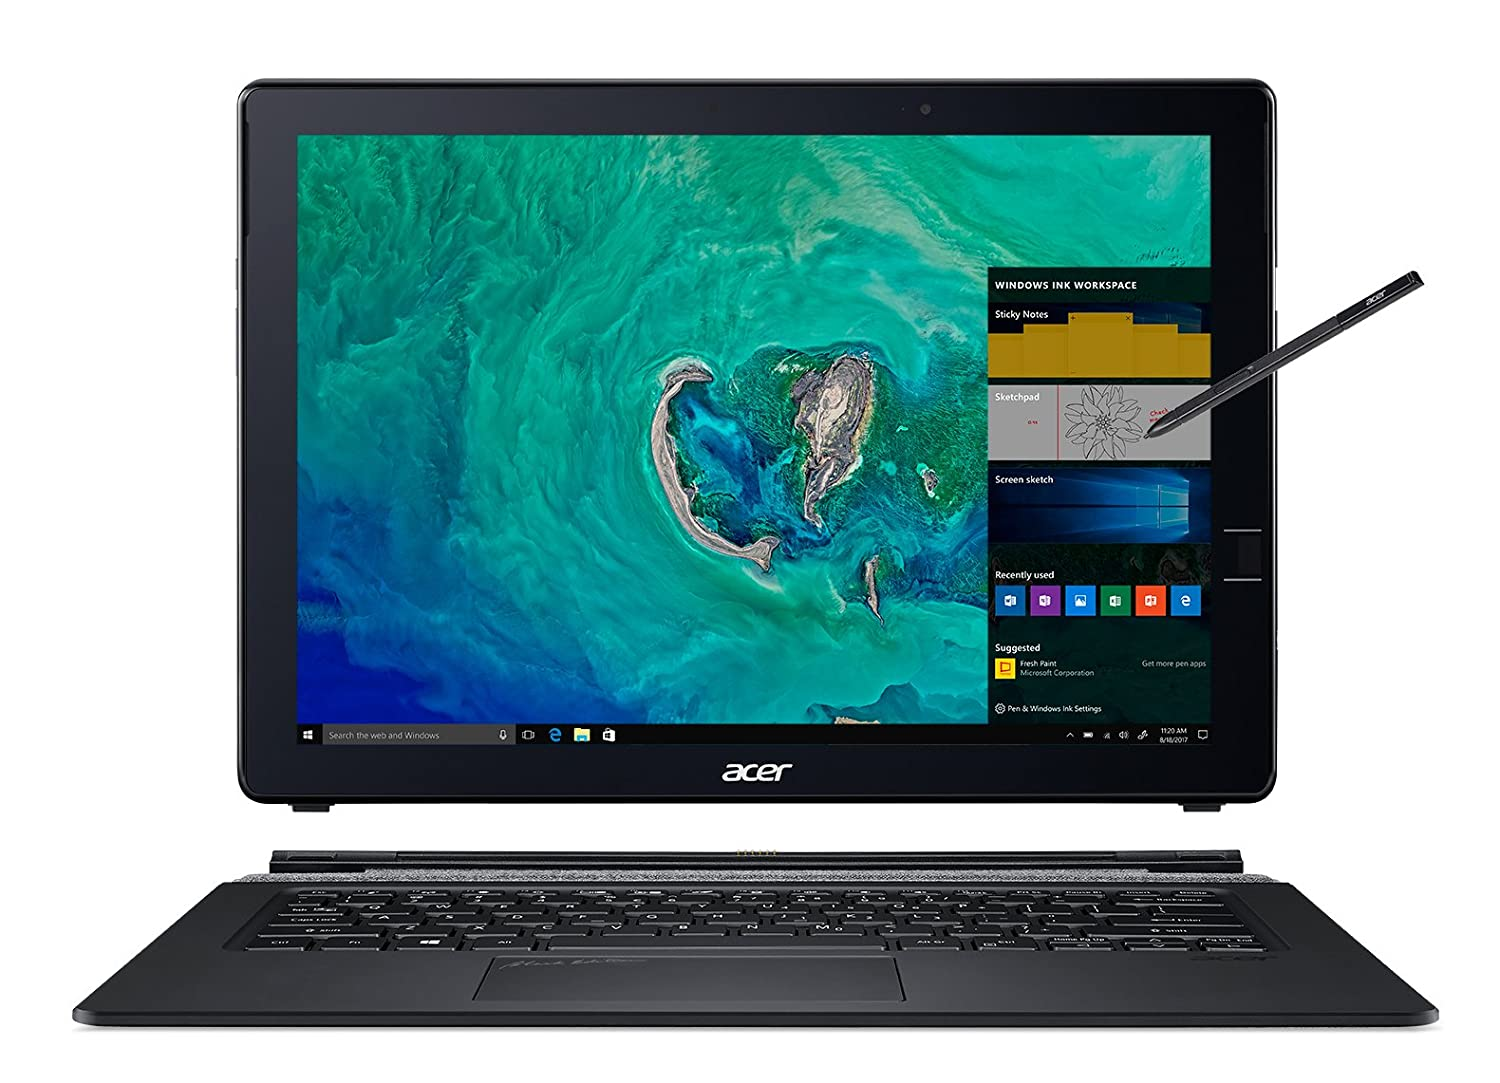 "Acer Switch 7 Black Edition, 13.5"" 2256 x 1504 Touch, 8th Gen Intel i7-8550U, 16GB LPDDR3, 512GB SSD, Windows 10 Pro, Acer Active Stylus, SW713-51GNP-879G"